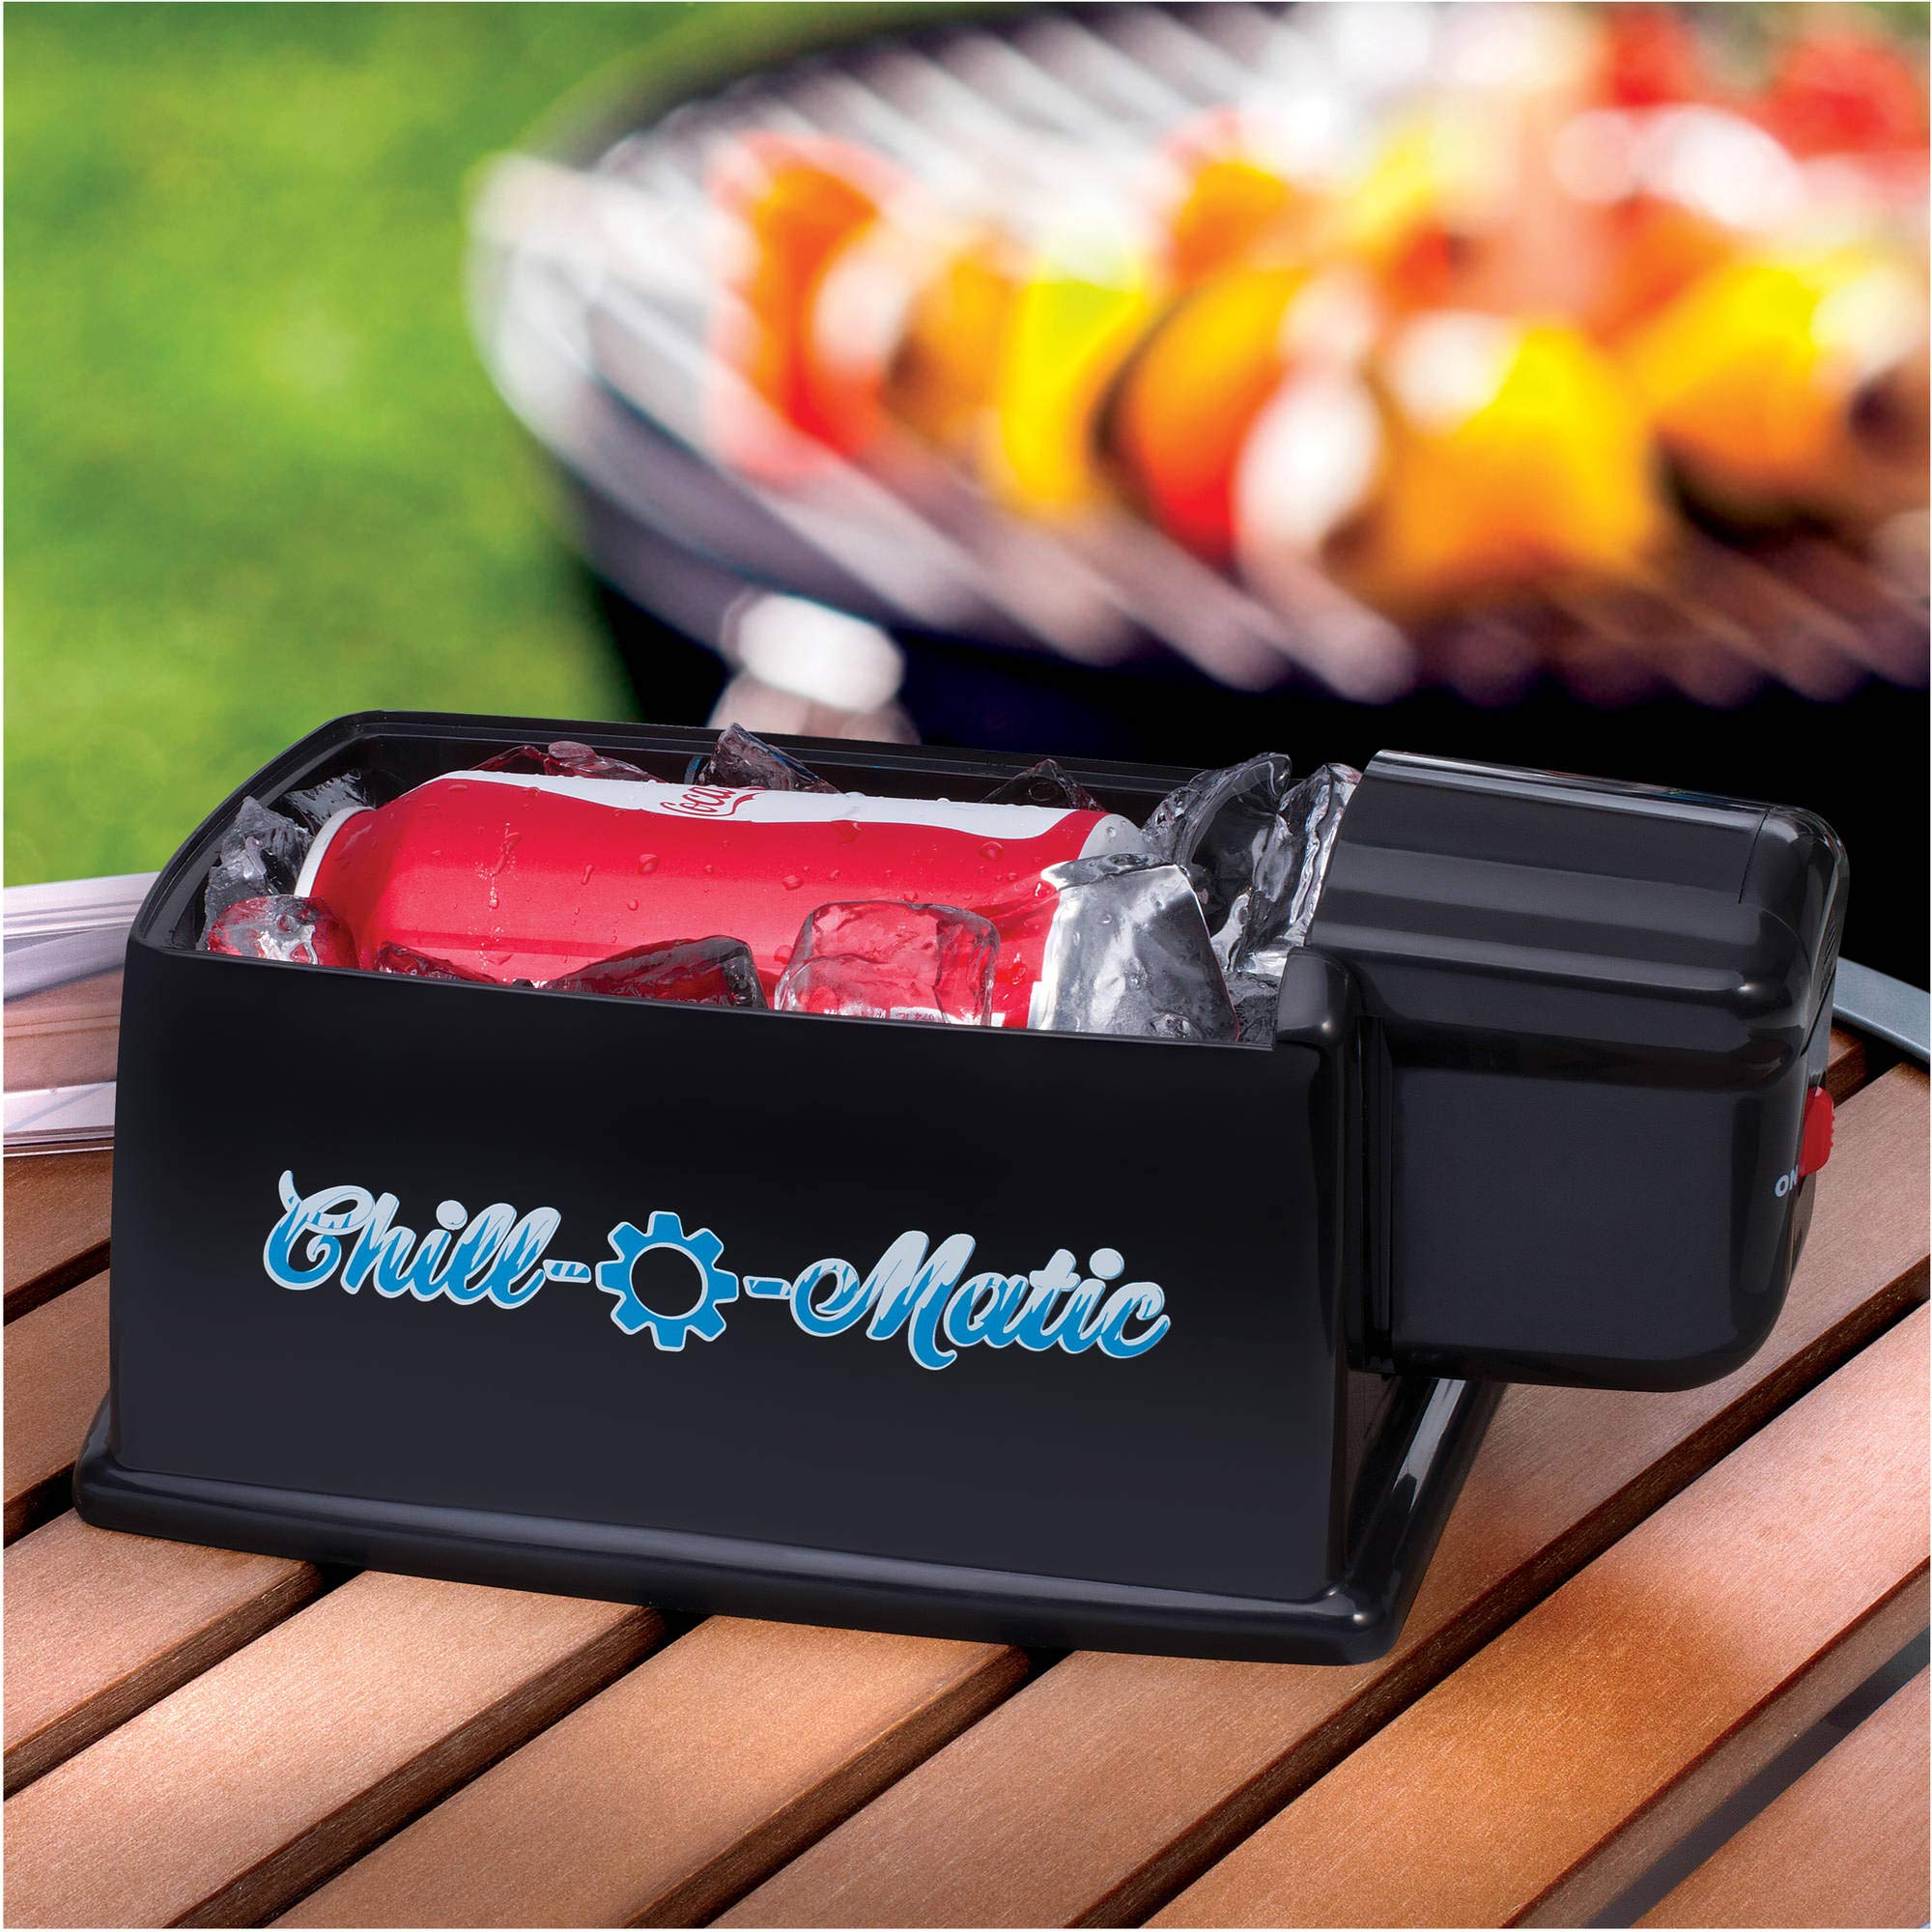 Chill-O-Matic Automatic Beverage Chiller. beer chiller, can chiller, drink chiller by Chill-O-Matic (Image #4)